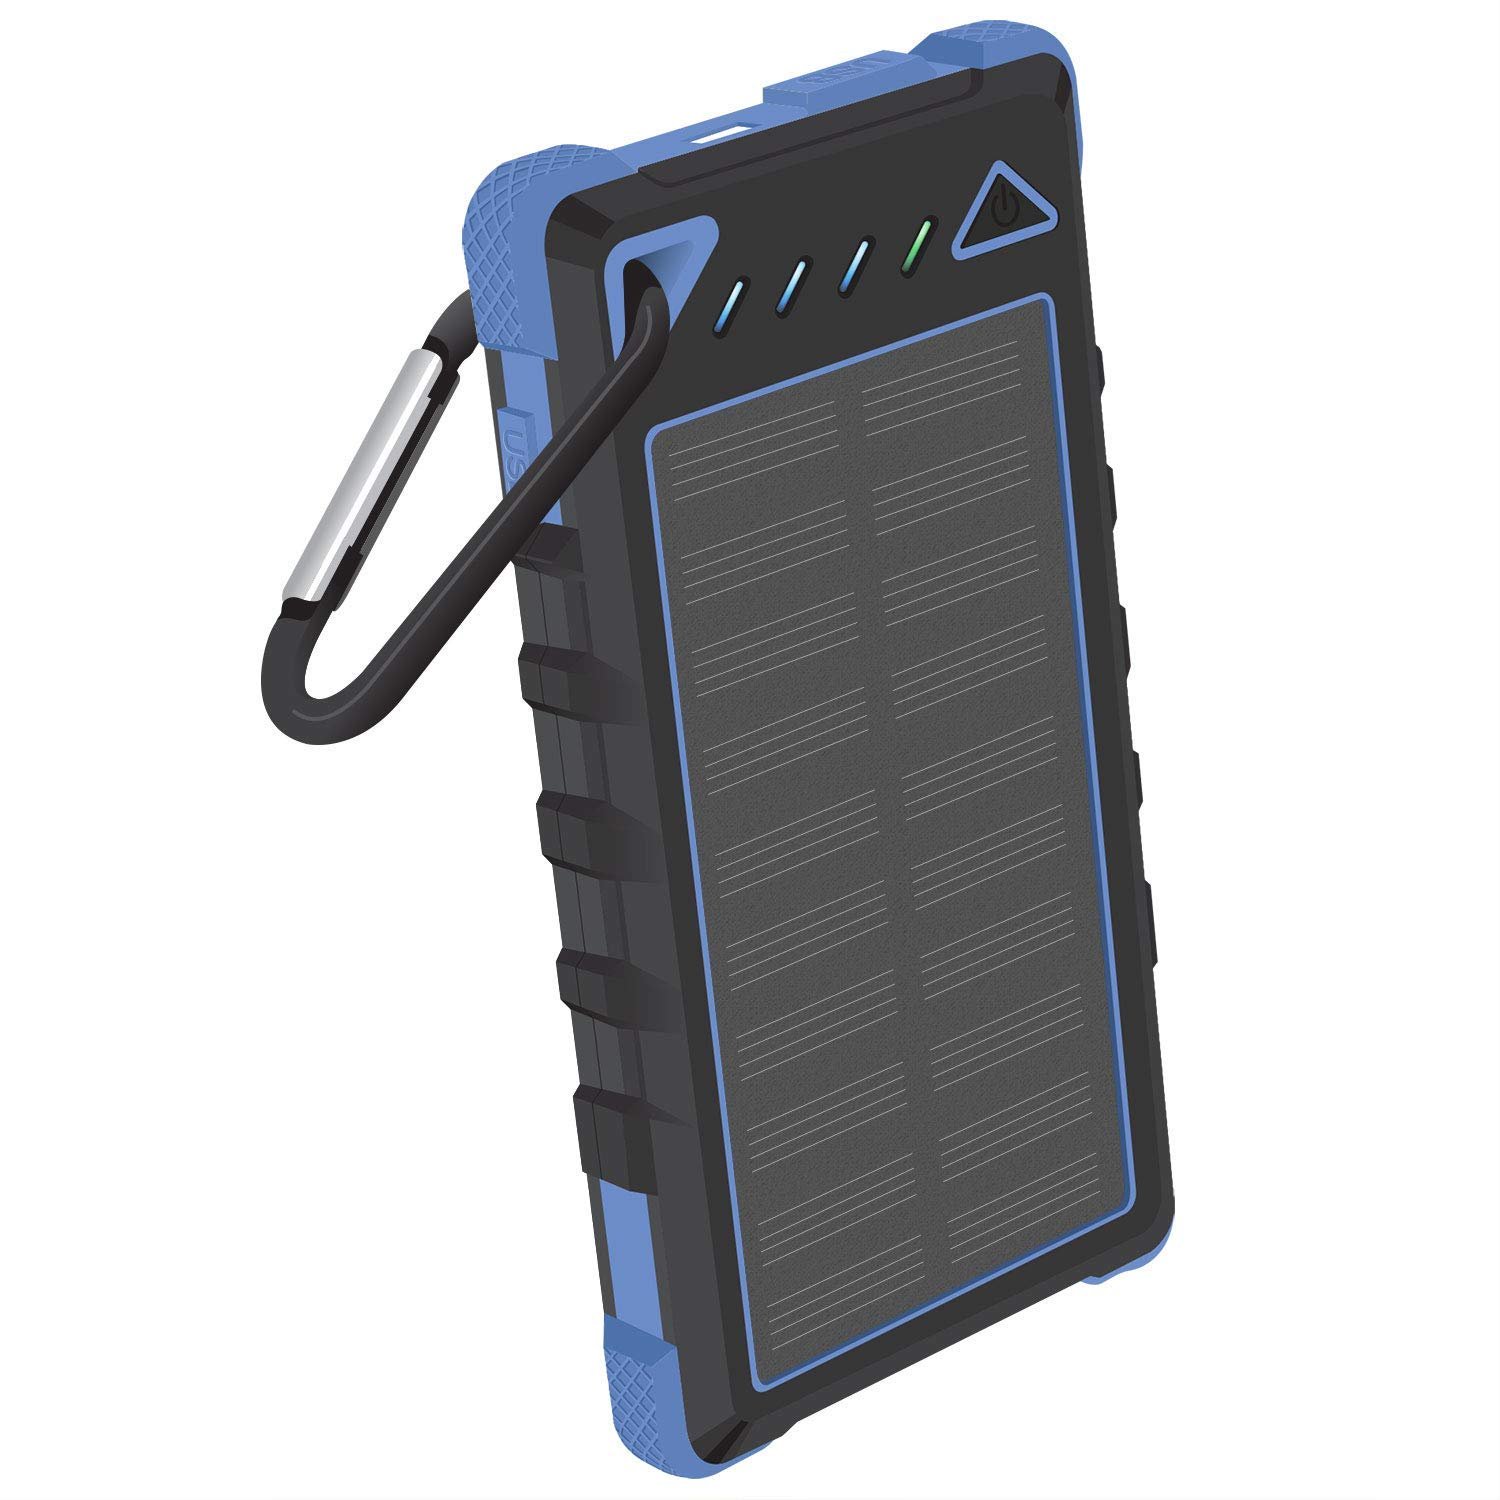 8,000mAh Solar Power Bank Built in Status Display Dual USB Ports Shock Wather Proof Blue Compatible iPhone Xr